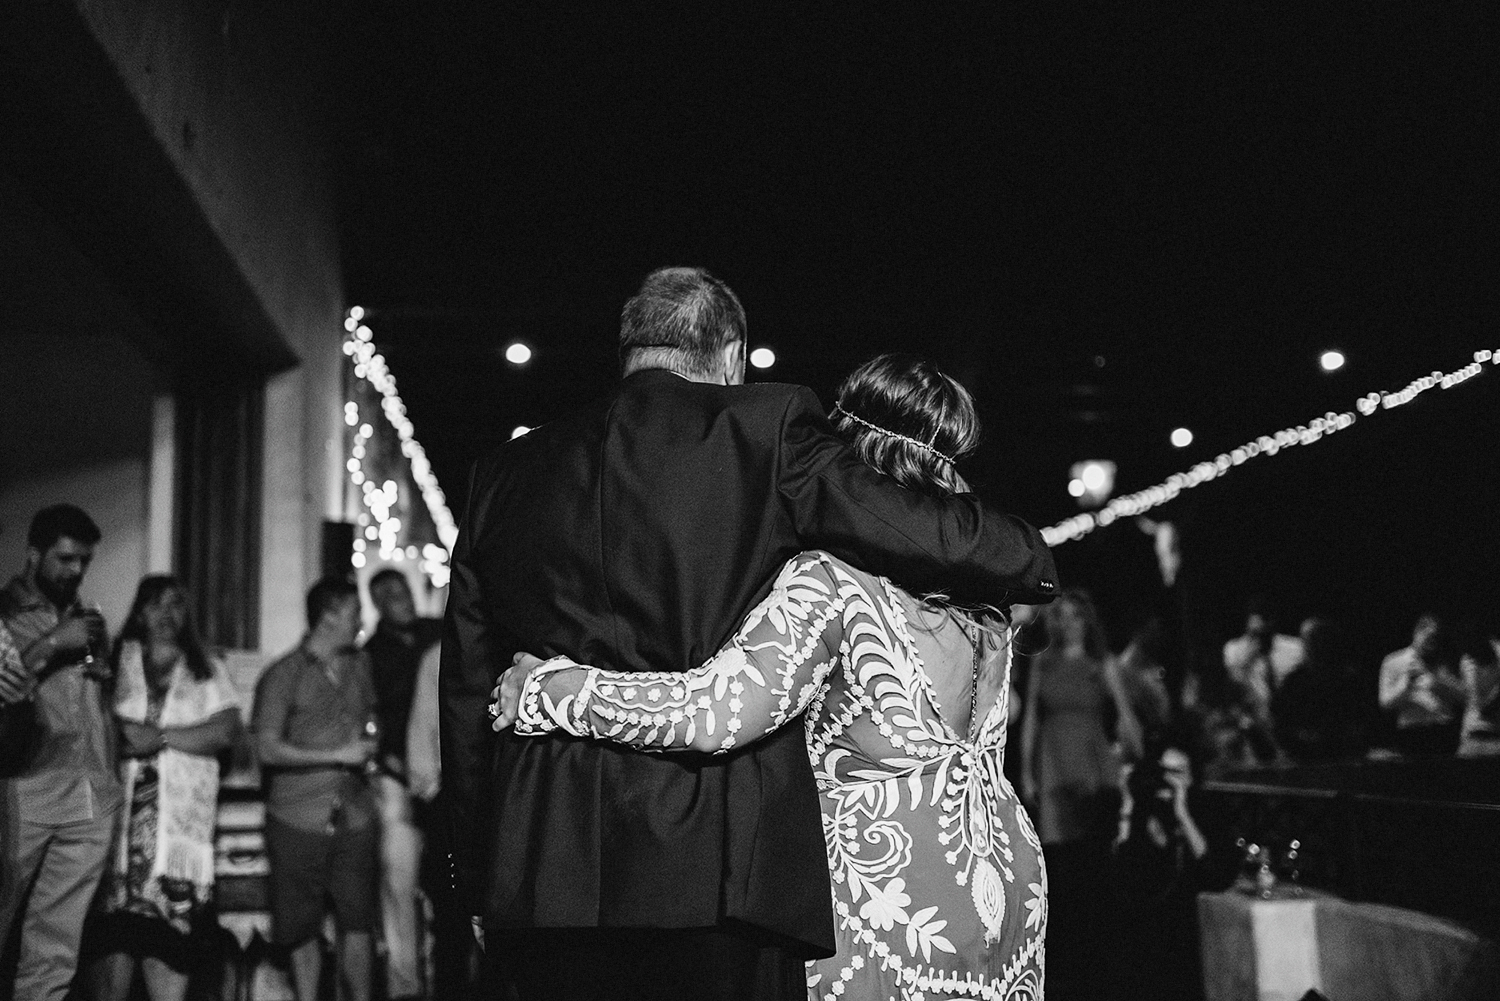 cabo-san-lucas-ventanas-private-residence-alternative-toronto-wedding-photographer-documentary-photojournalistic-reception-best-love-actually-moments-over-mountains-candid-father-daughter-dance-cabo-skyline-views-bw.jpg